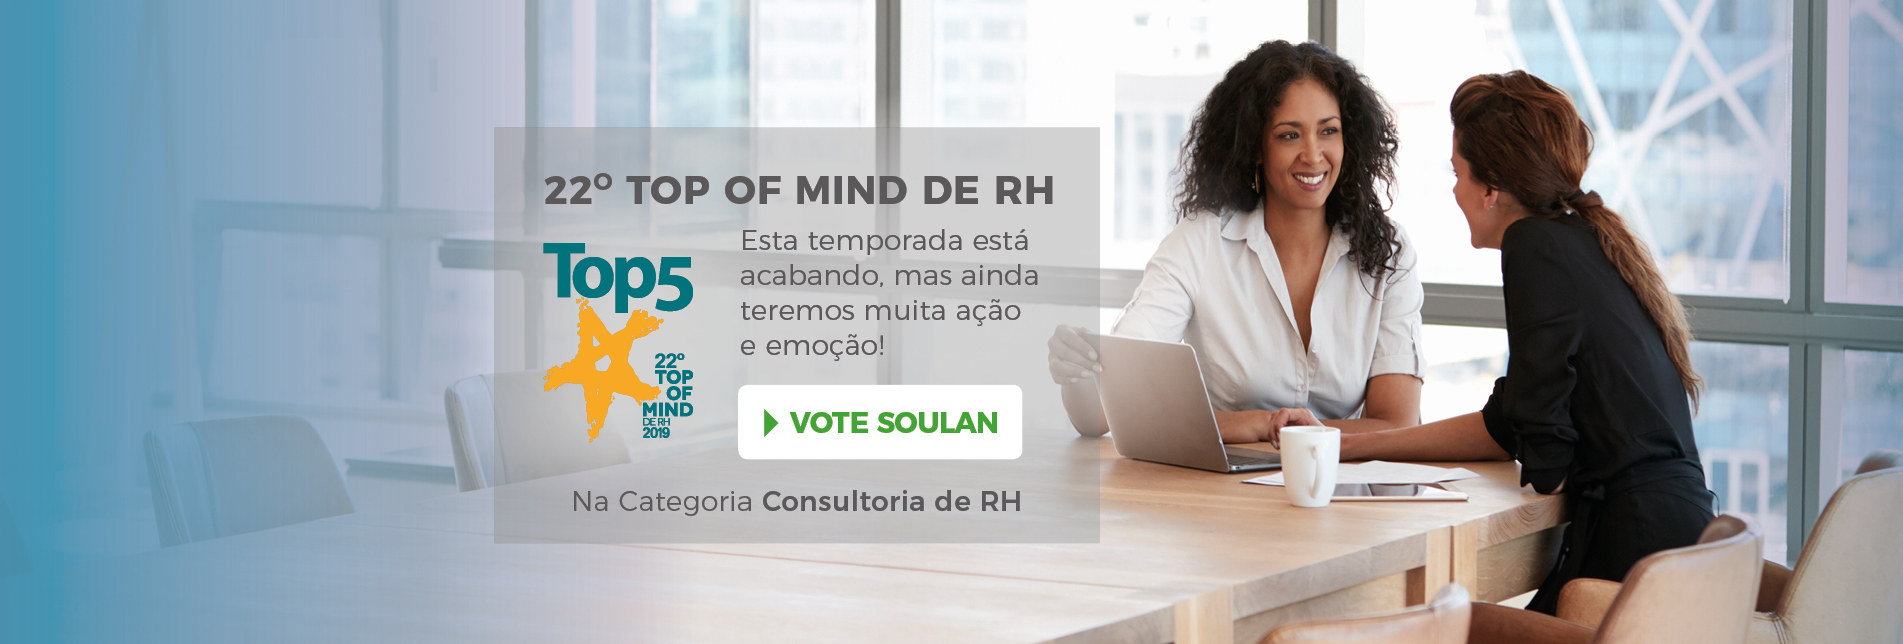 22º TOP OF MIND DE RH